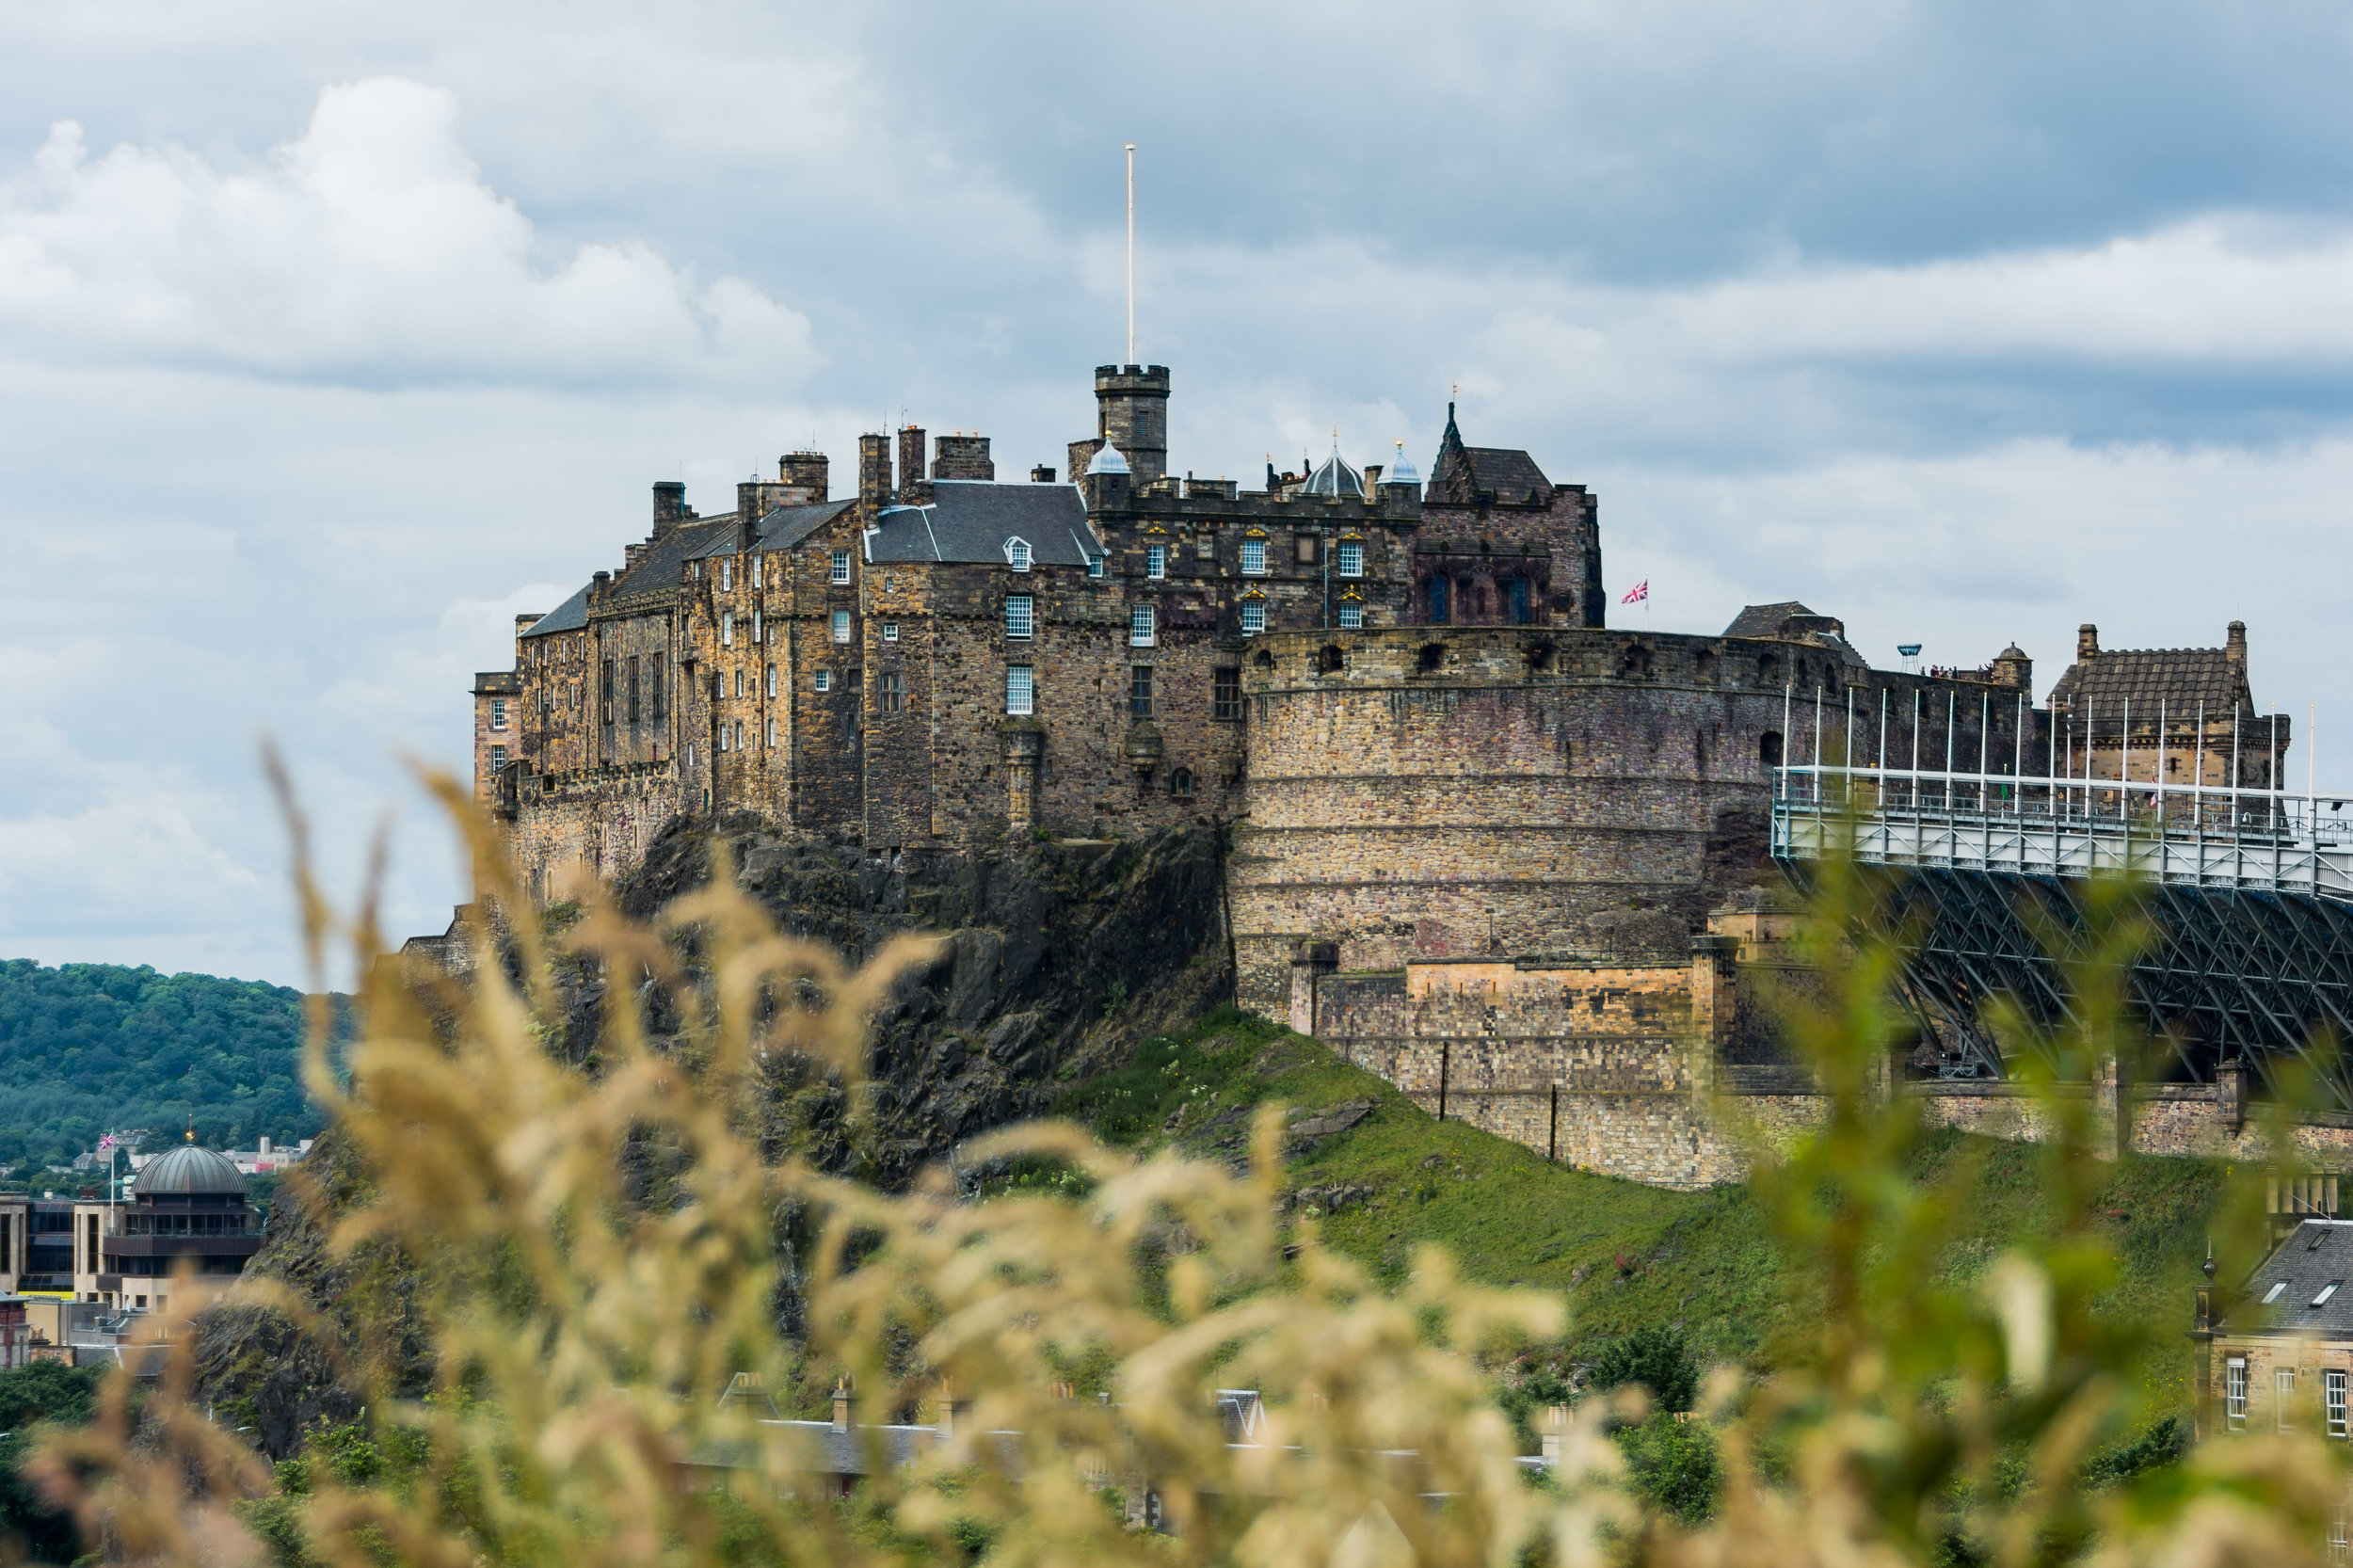 Edinburgh Castle during our trip to Edinburgh, London, and Copenhagen this past summer.